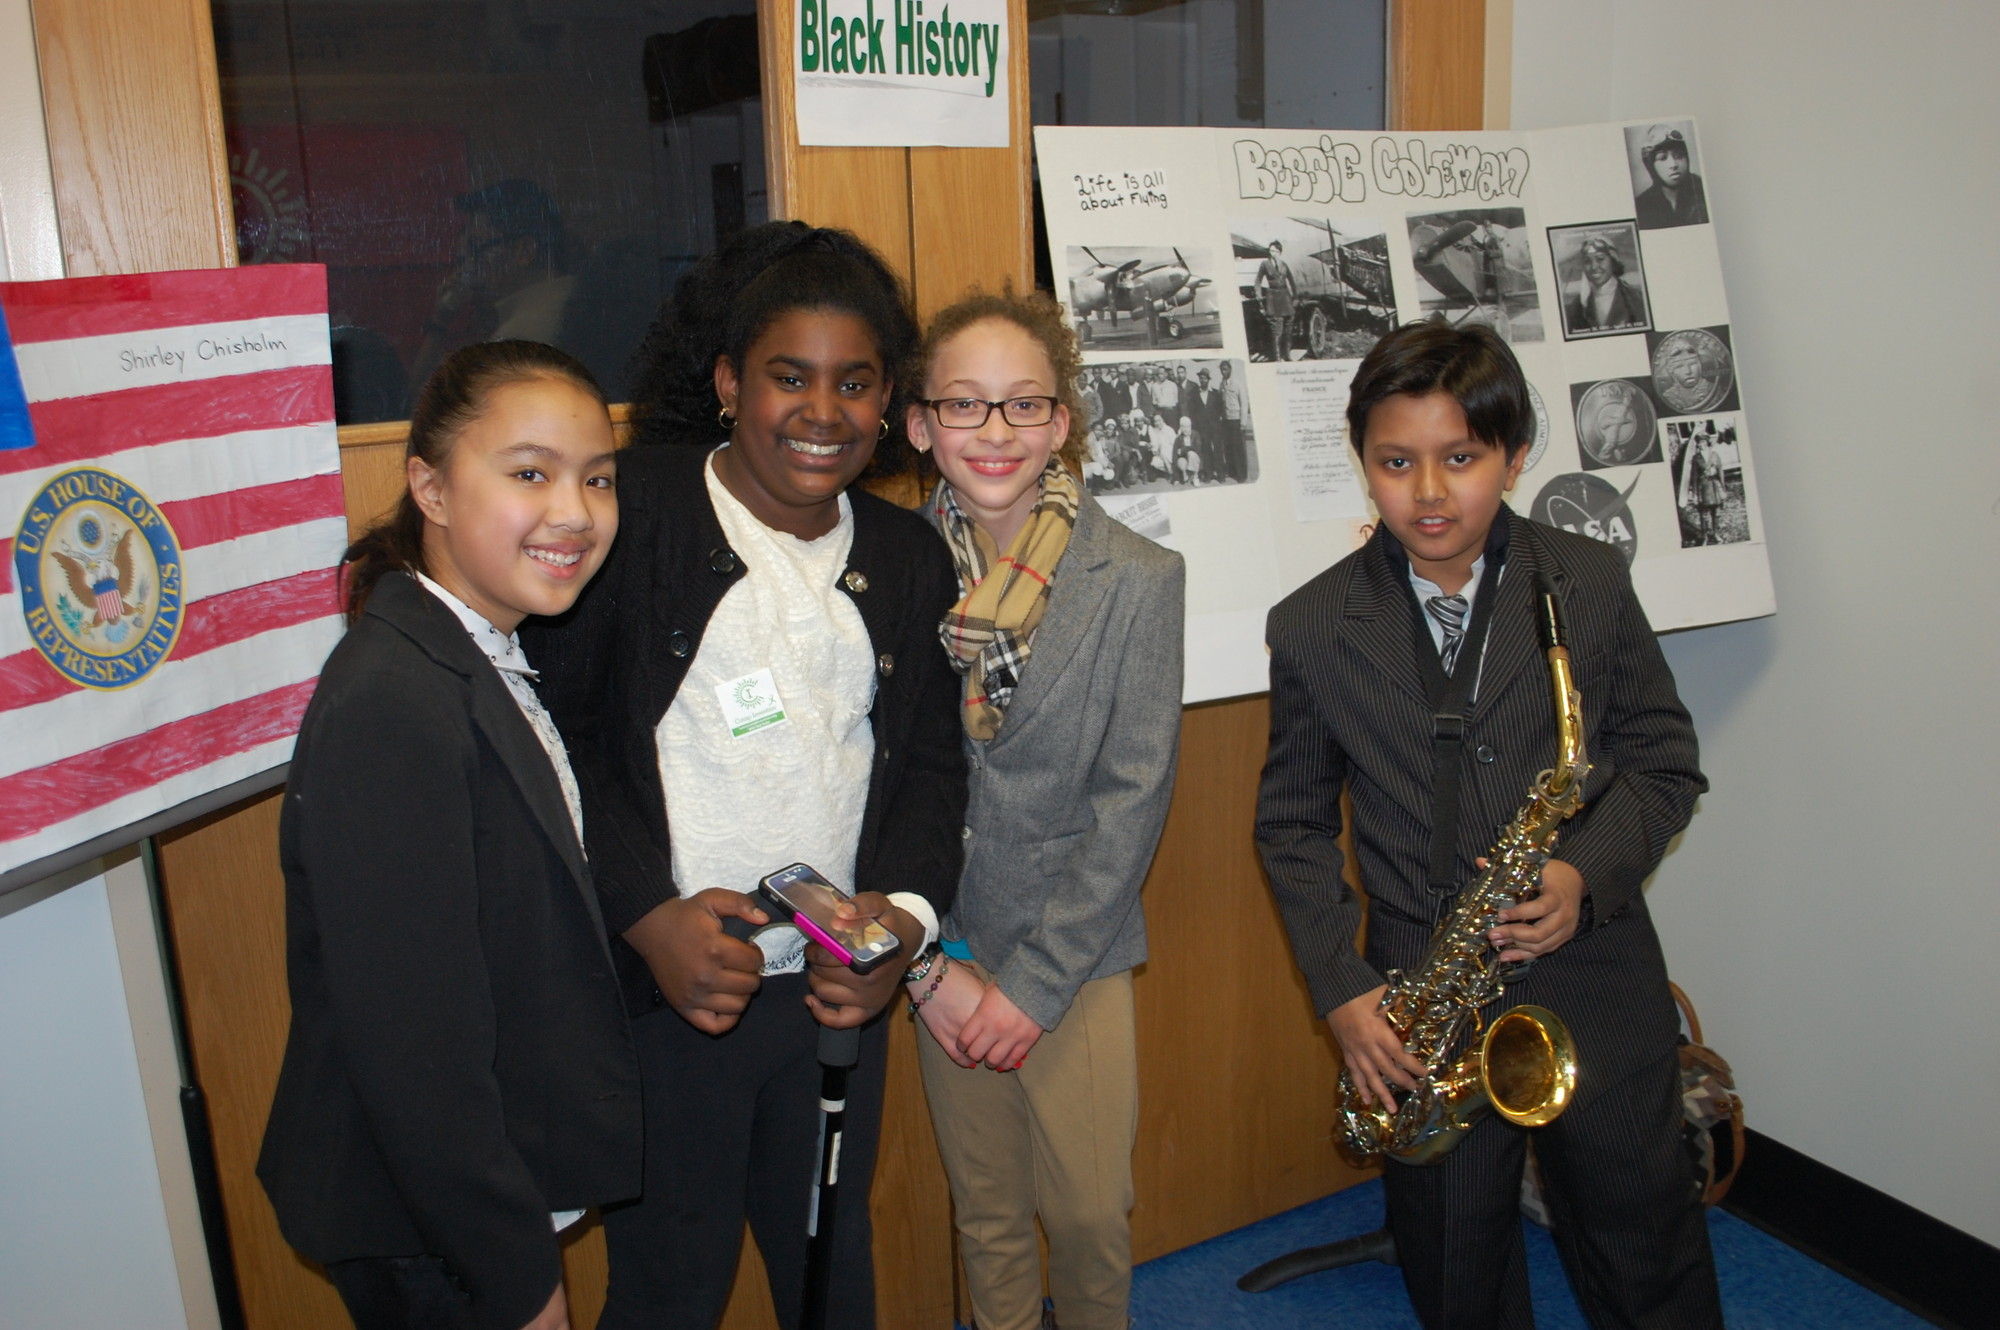 Forest Road School fifth-graders, from left, Kristin Luyun, Tercella King, Alyssa Goodleigh and Ritik Jain, shared their Black history projects.